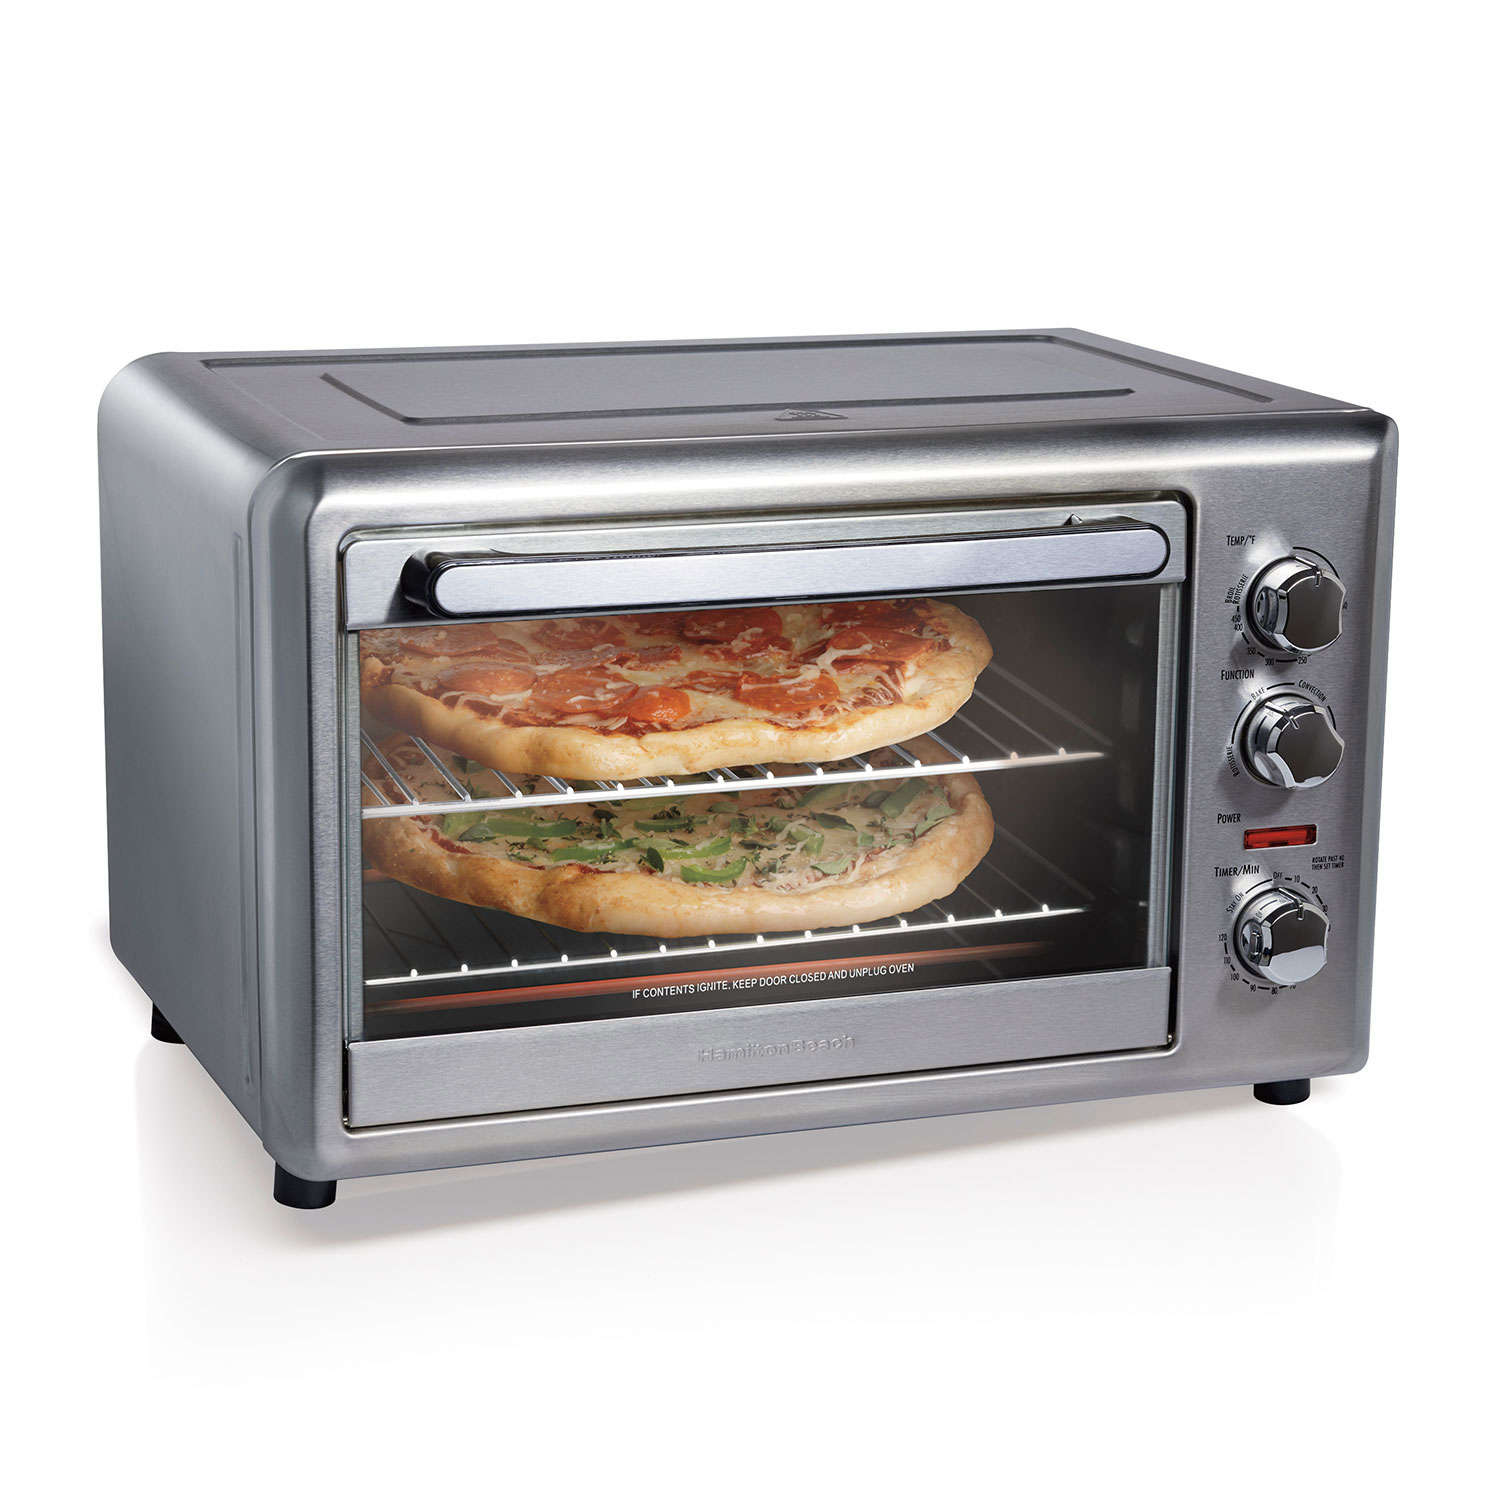 Countertop Oven with Convection and Rotisserie (31106)